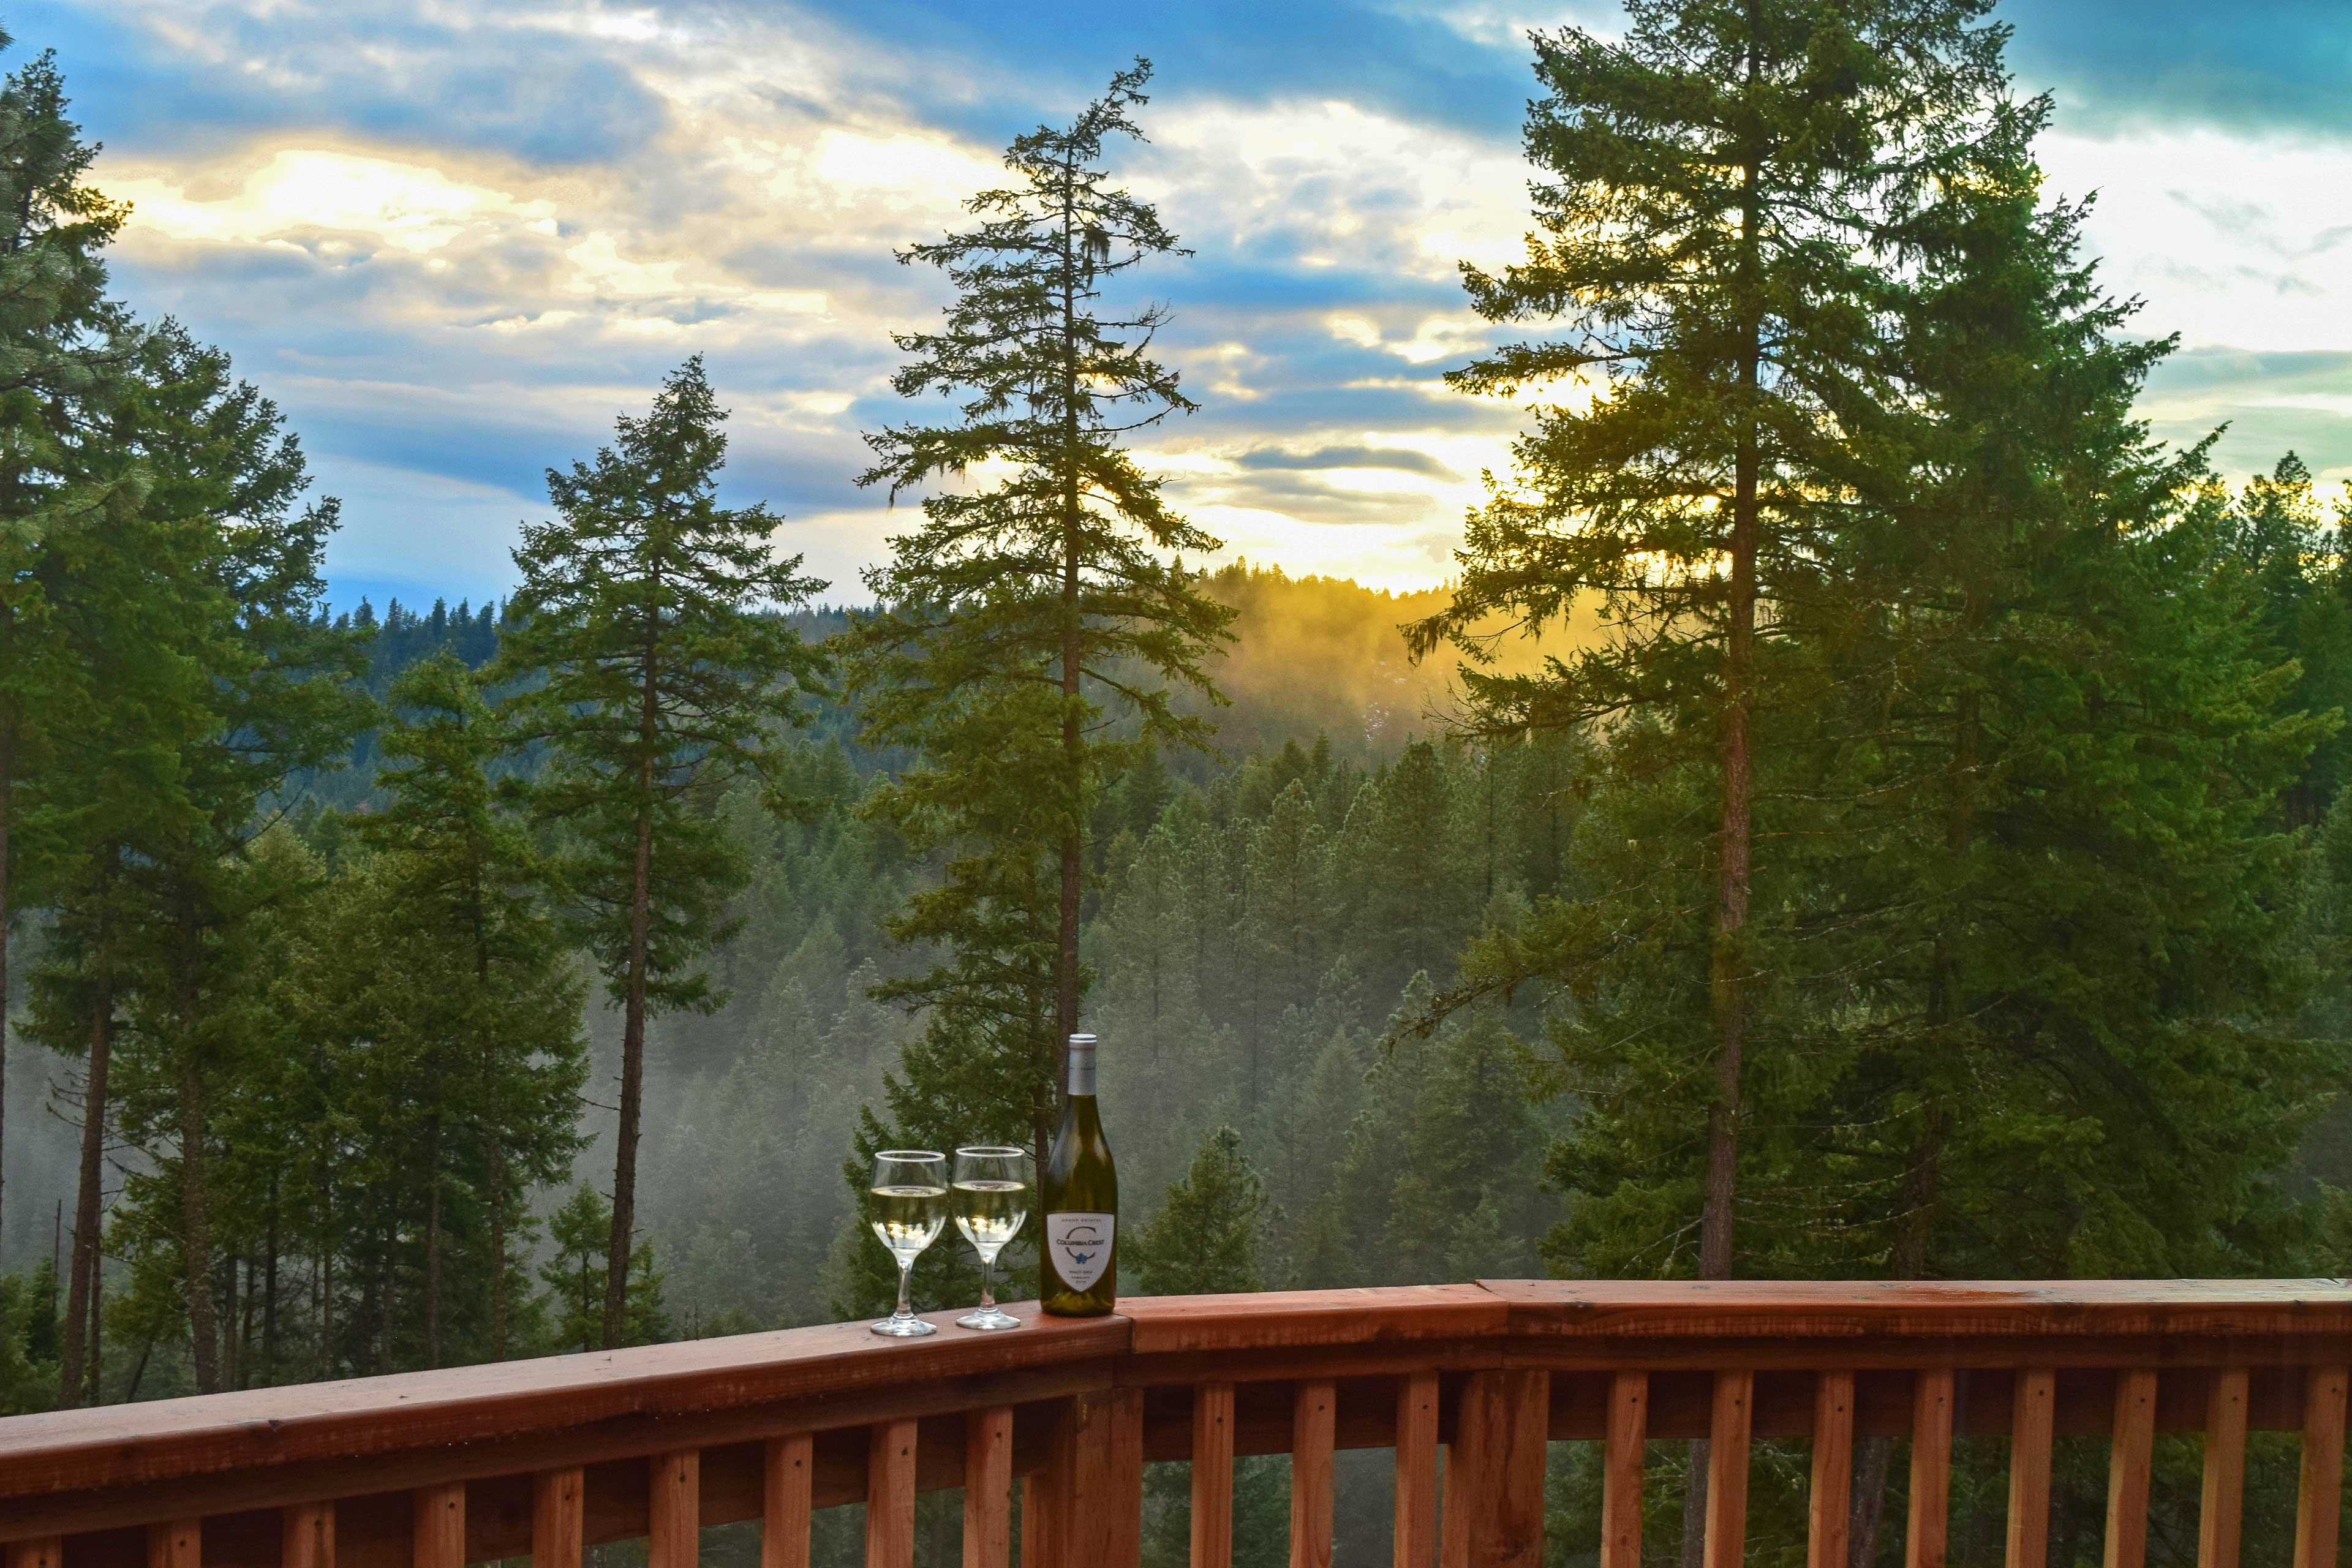 Grab a bottle of wine to share on the furnished deck.